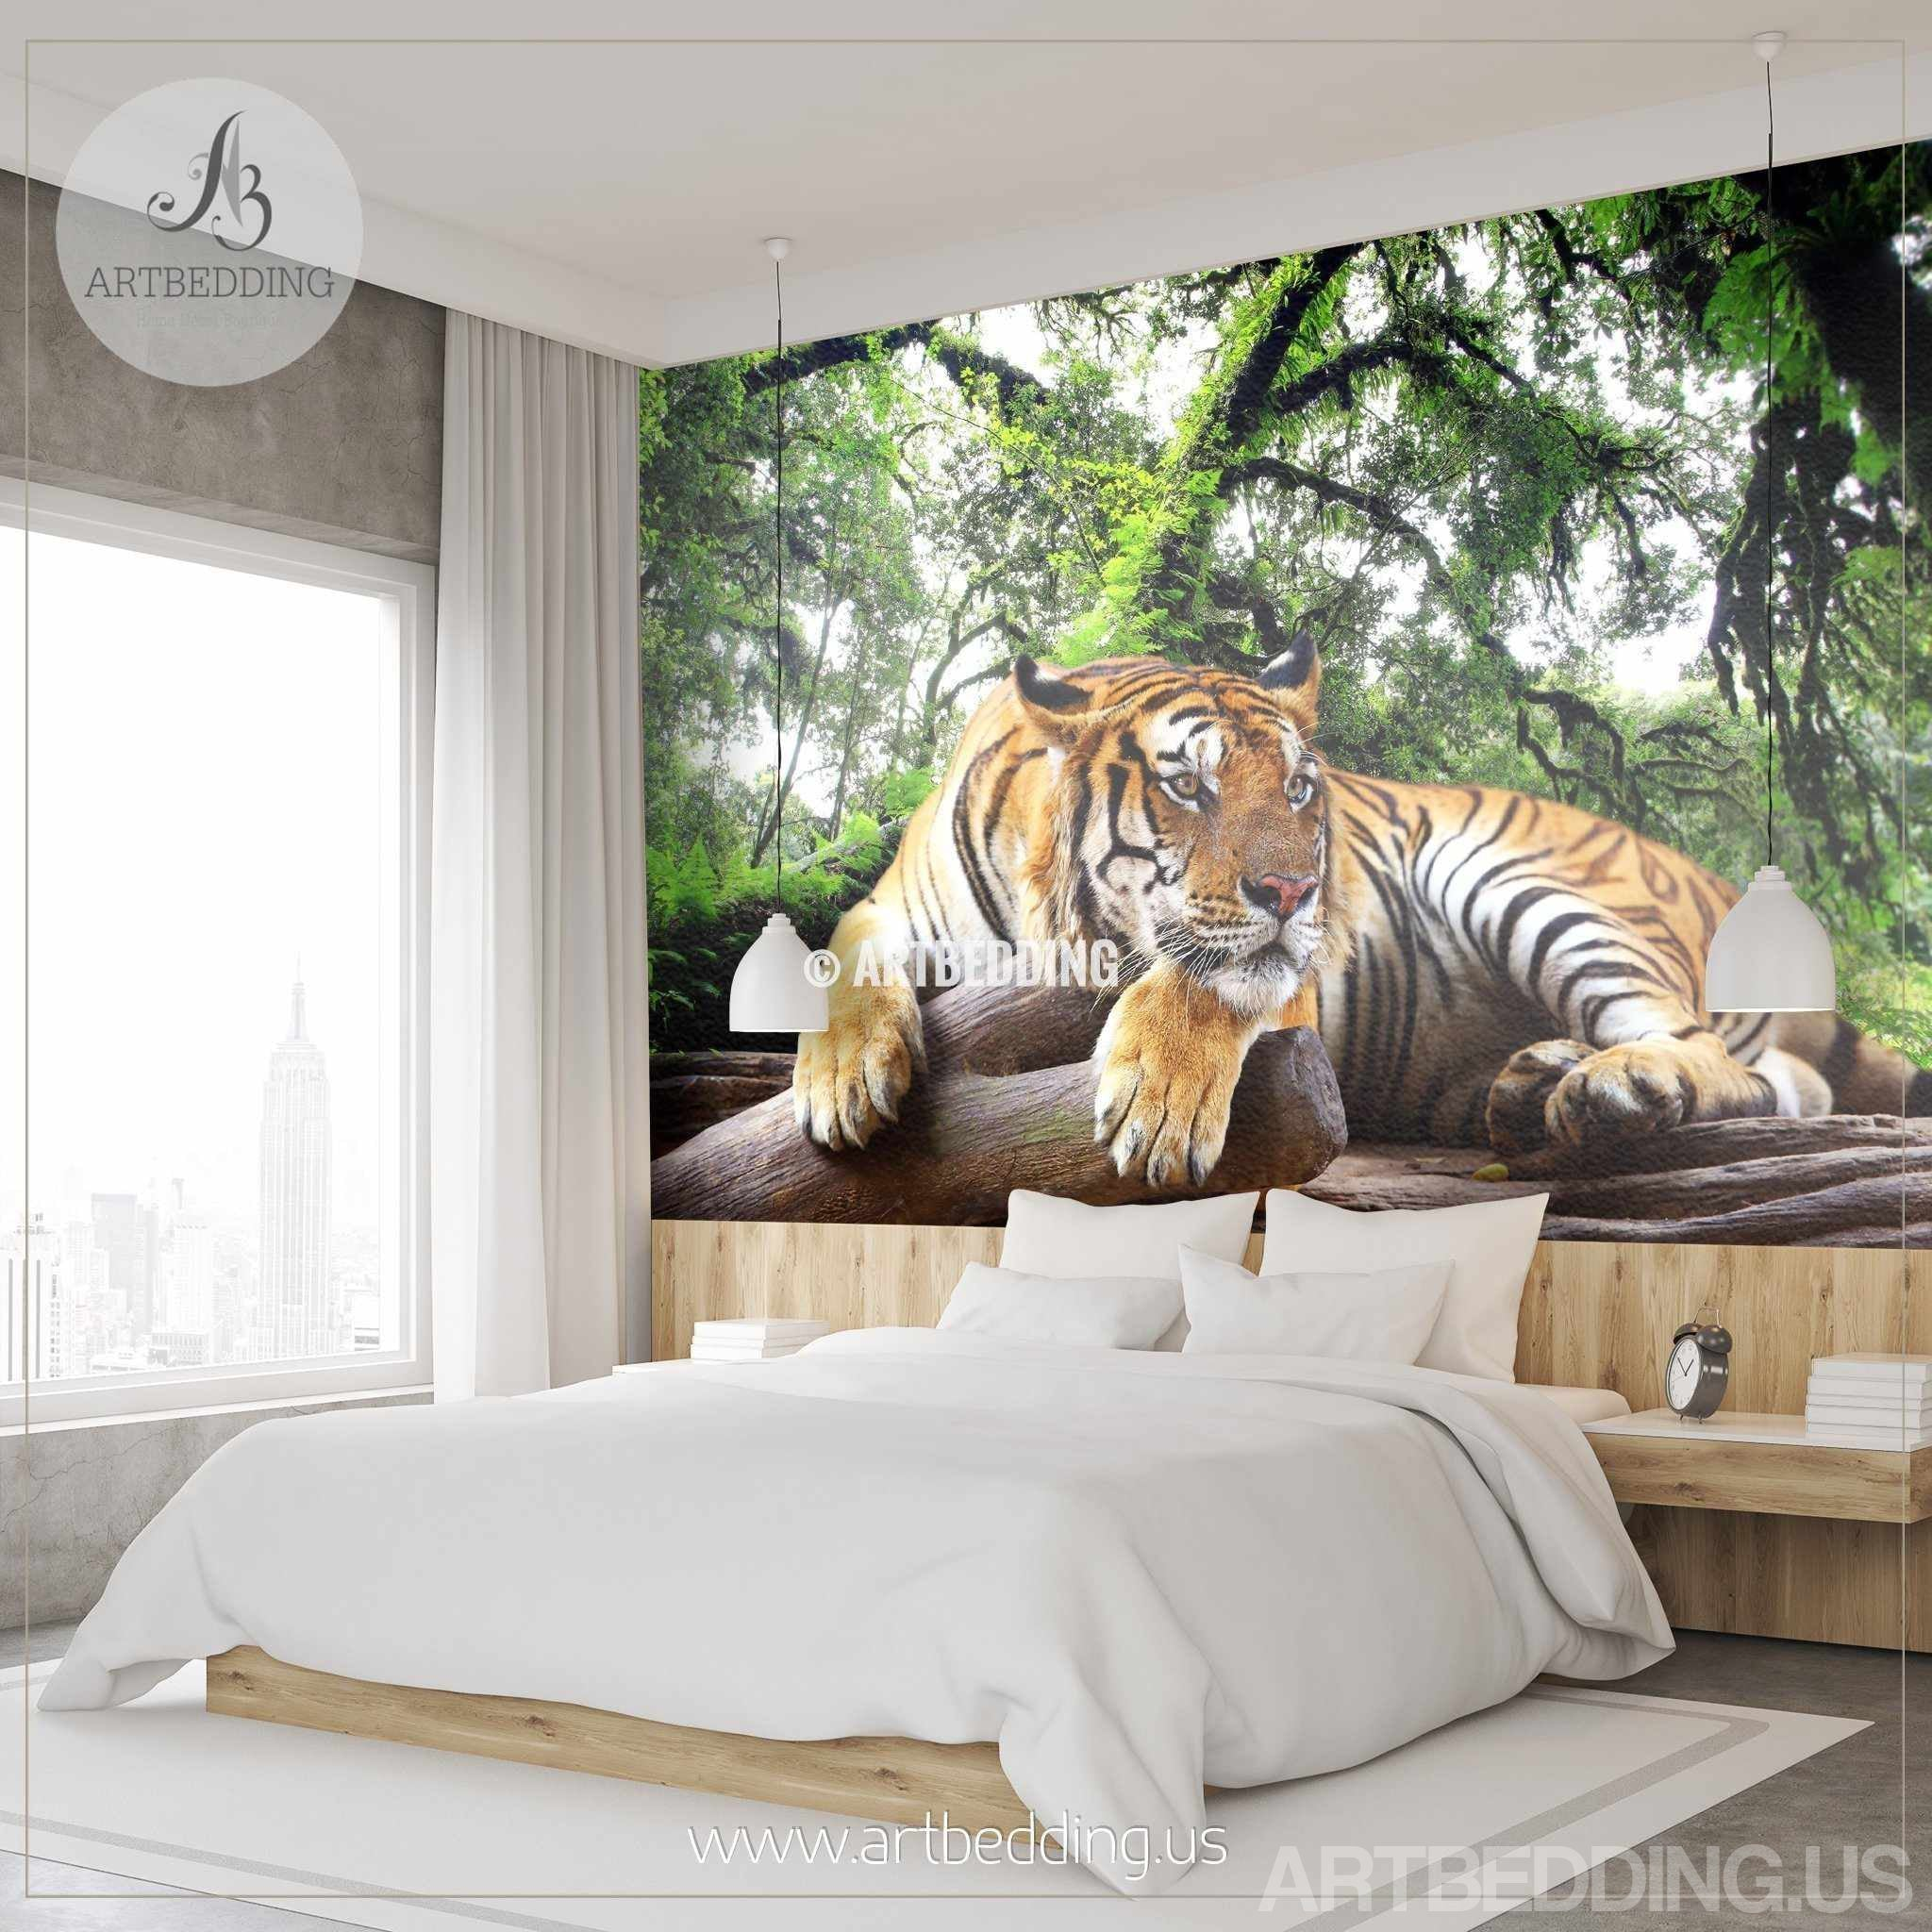 ... Tiger Wall Mural, Wild Tiger Self Adhesive Peel U0026 Stick Photo Mural,  African Tiger ...